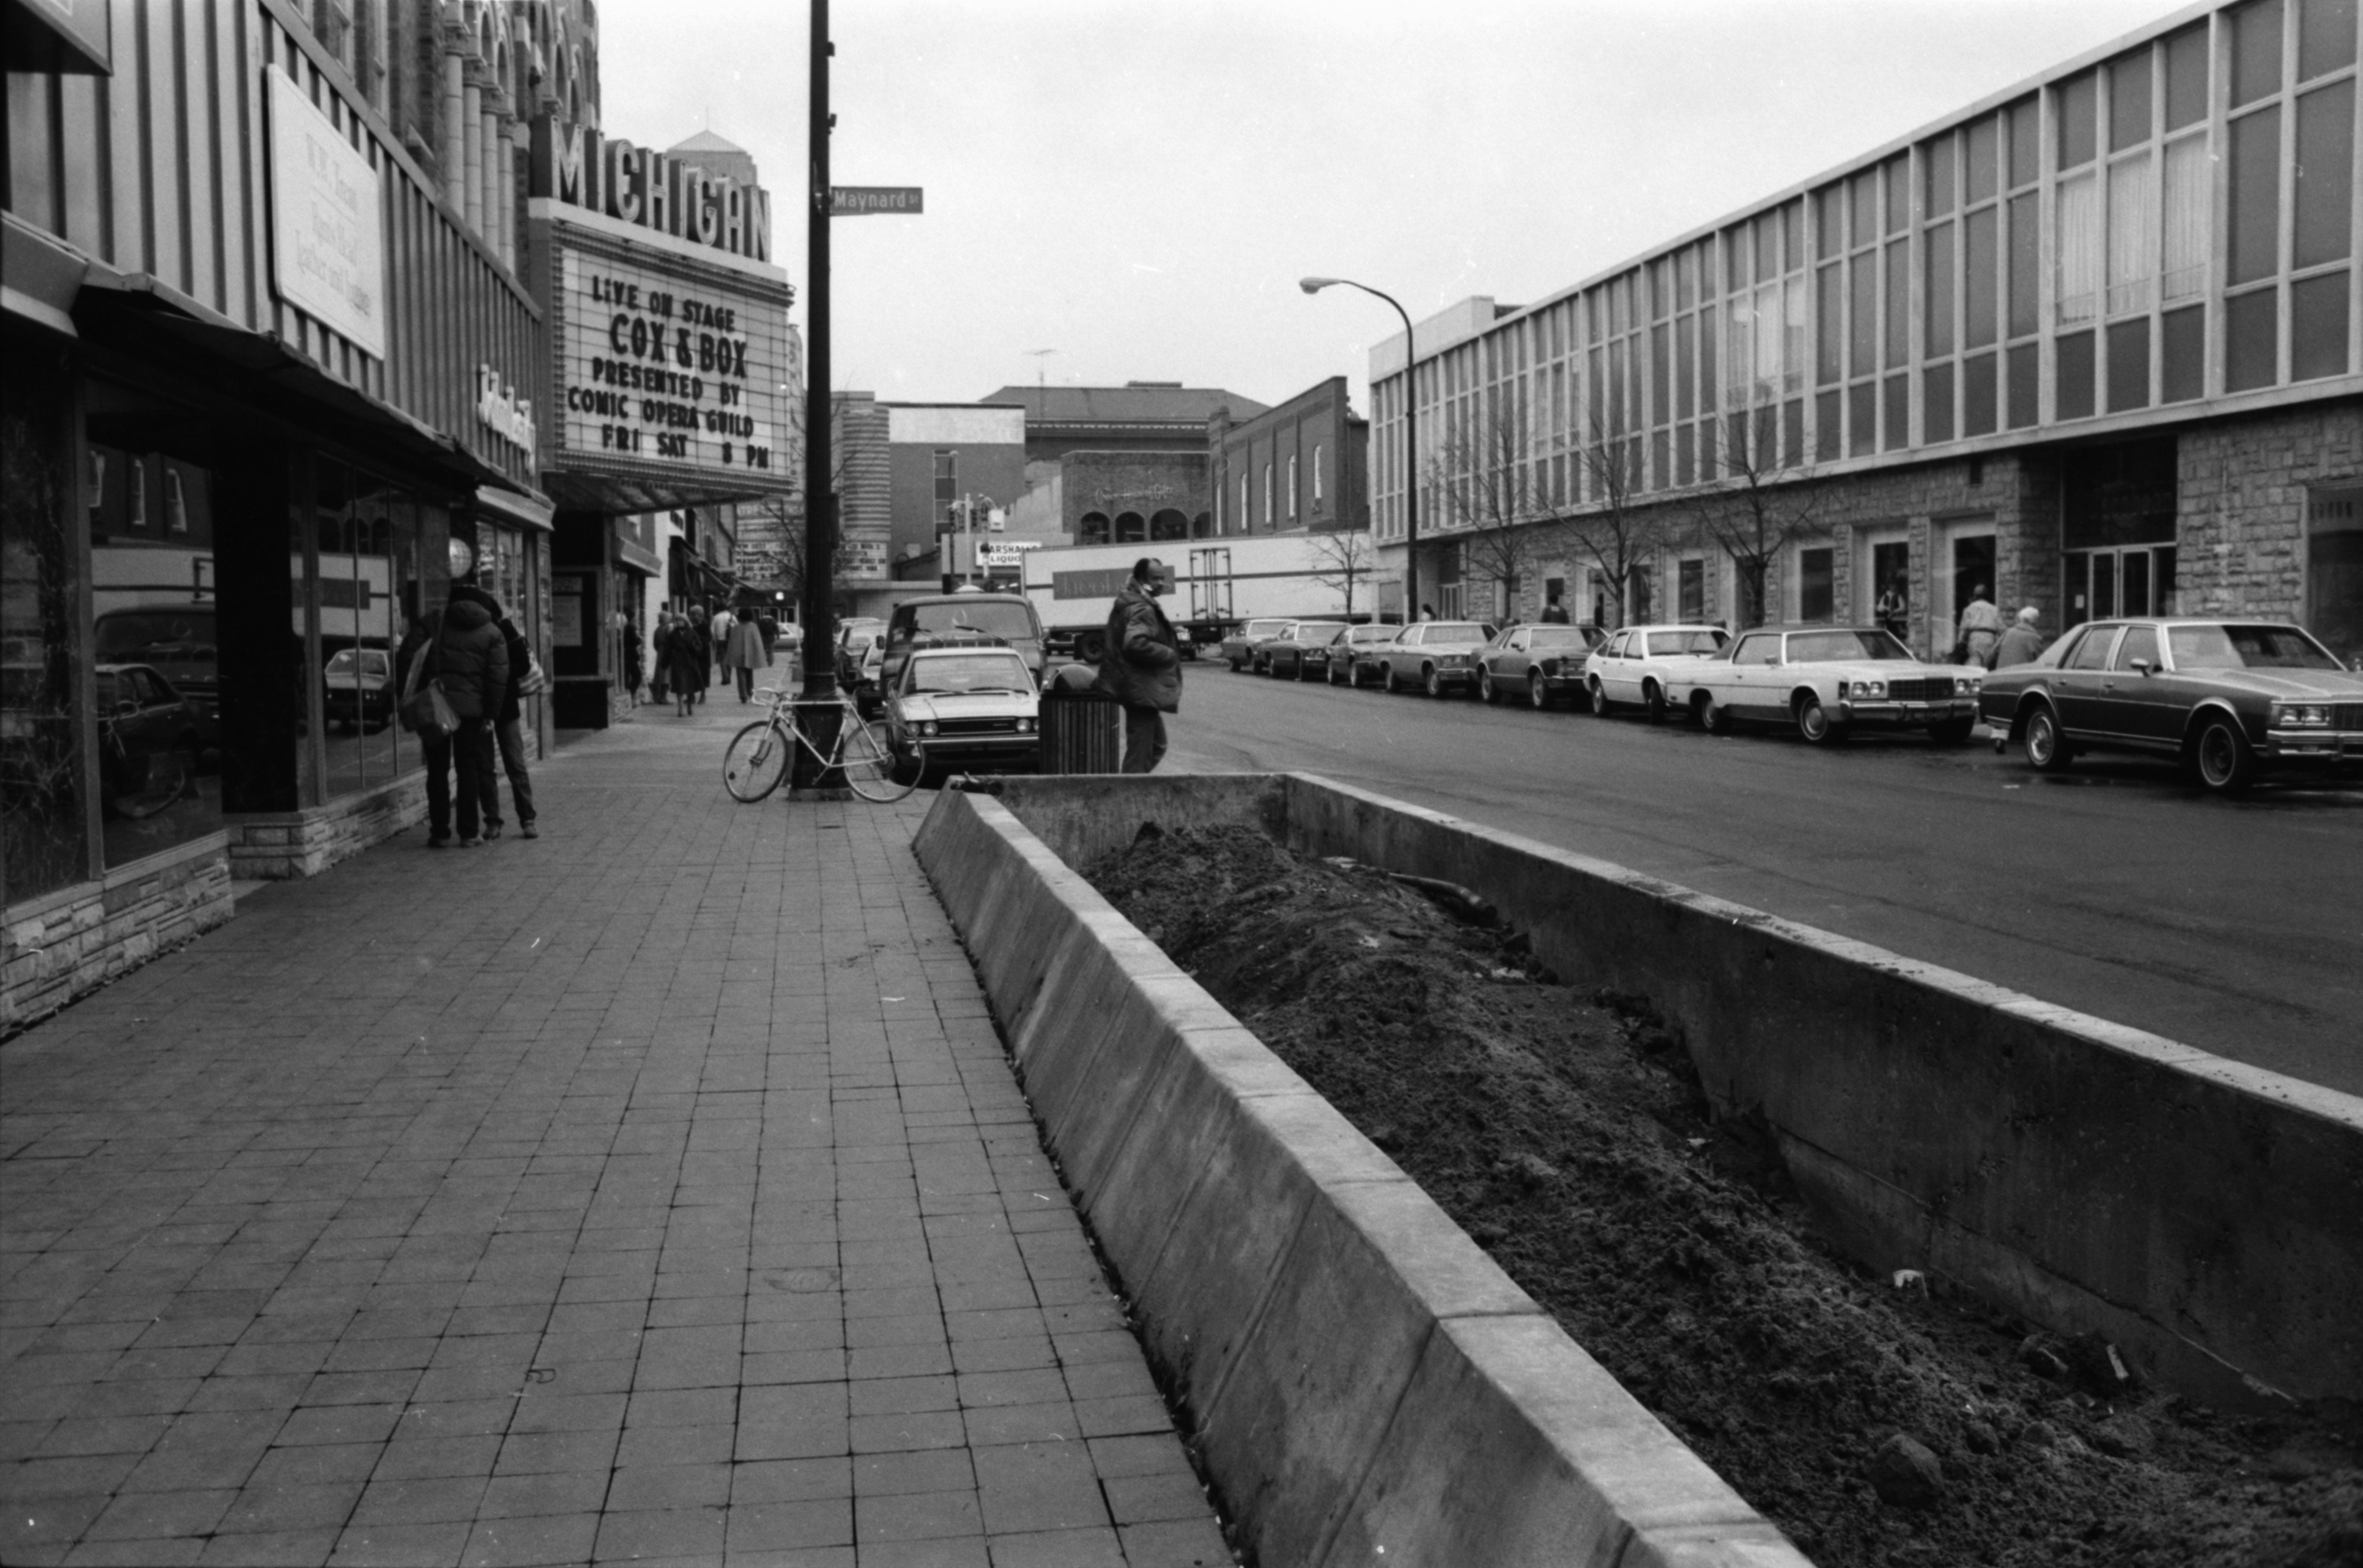 State Street, 1980 image